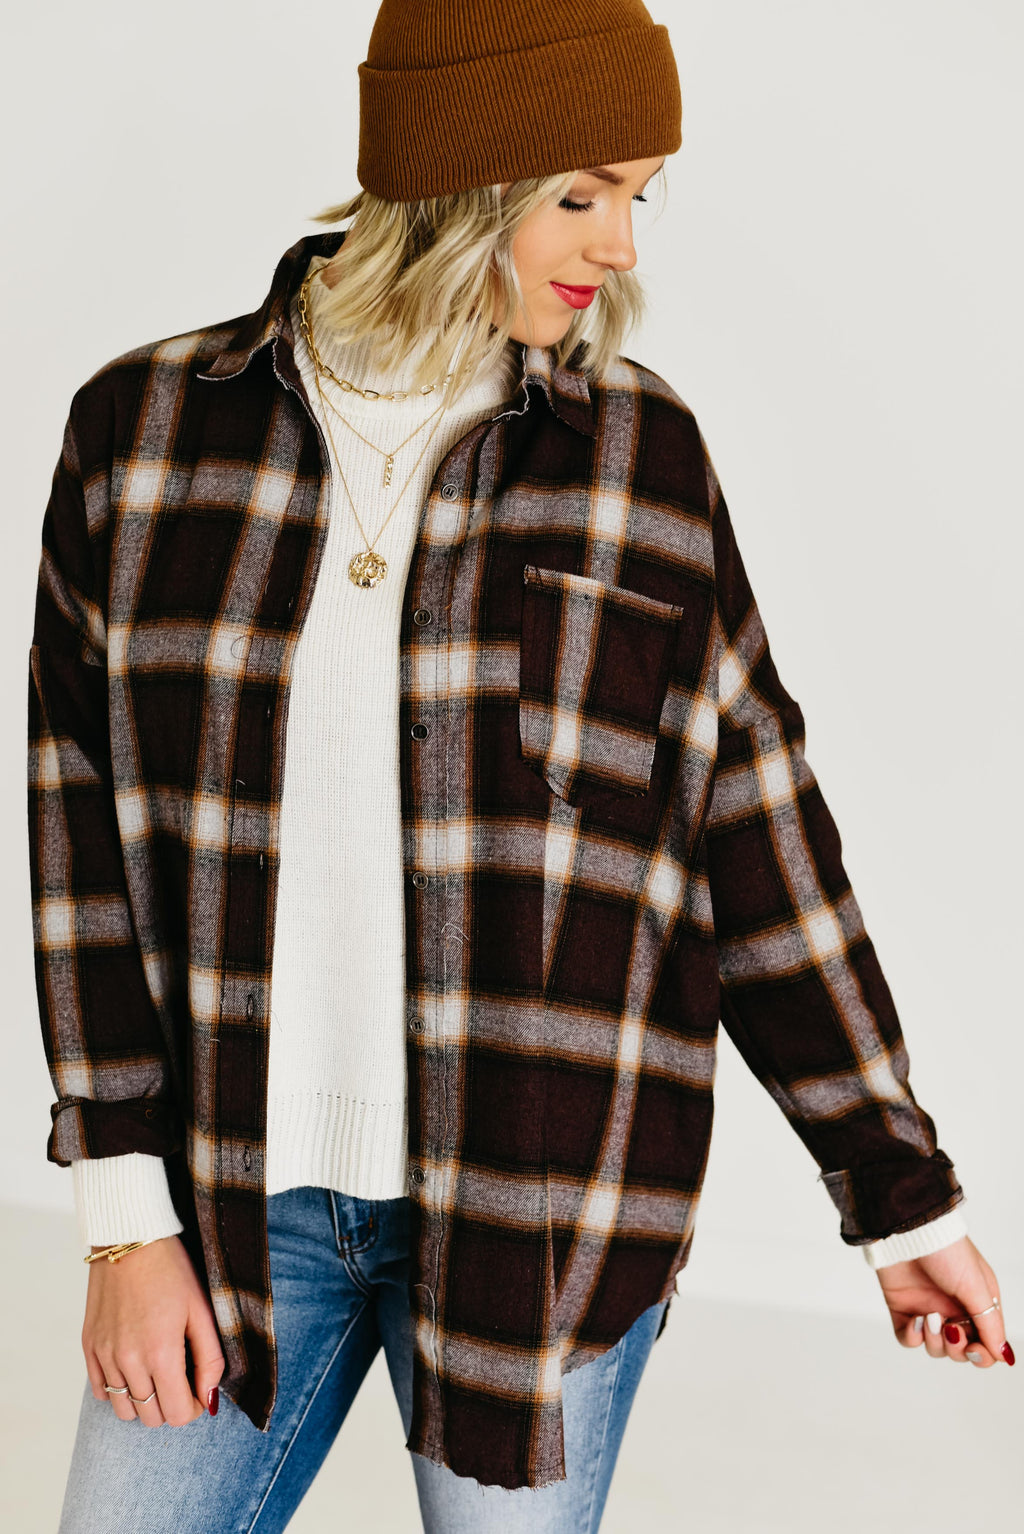 The Coletta Plaid Top - Brown